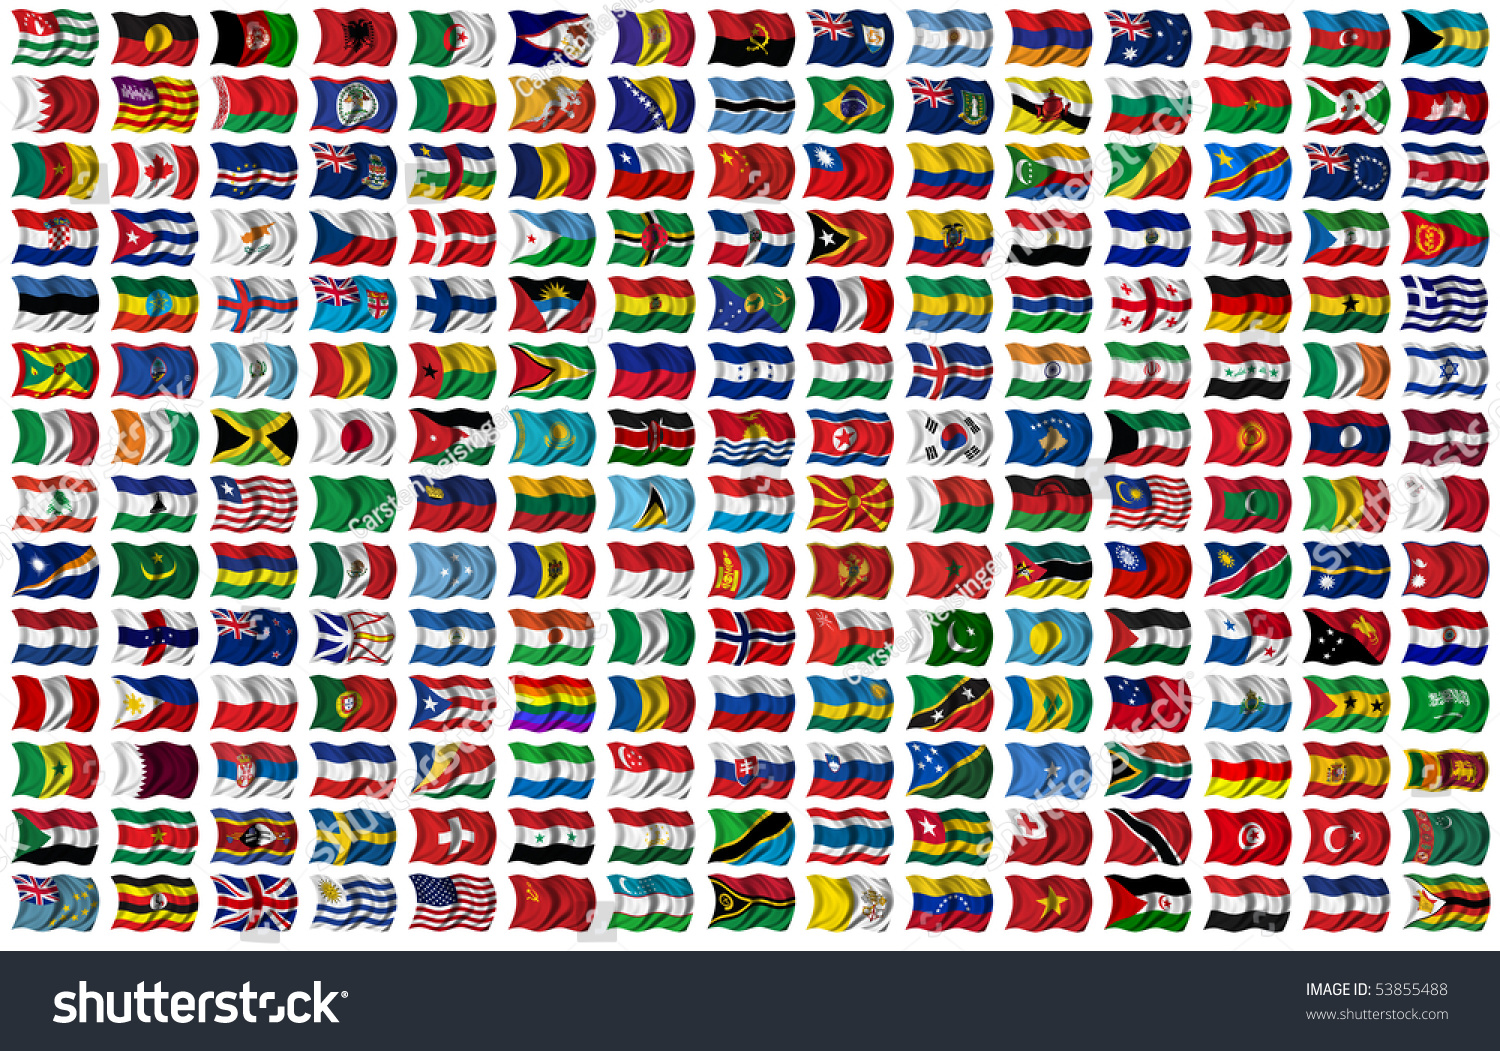 210 Flags World Every Flag Has Stock Illustration 53855488